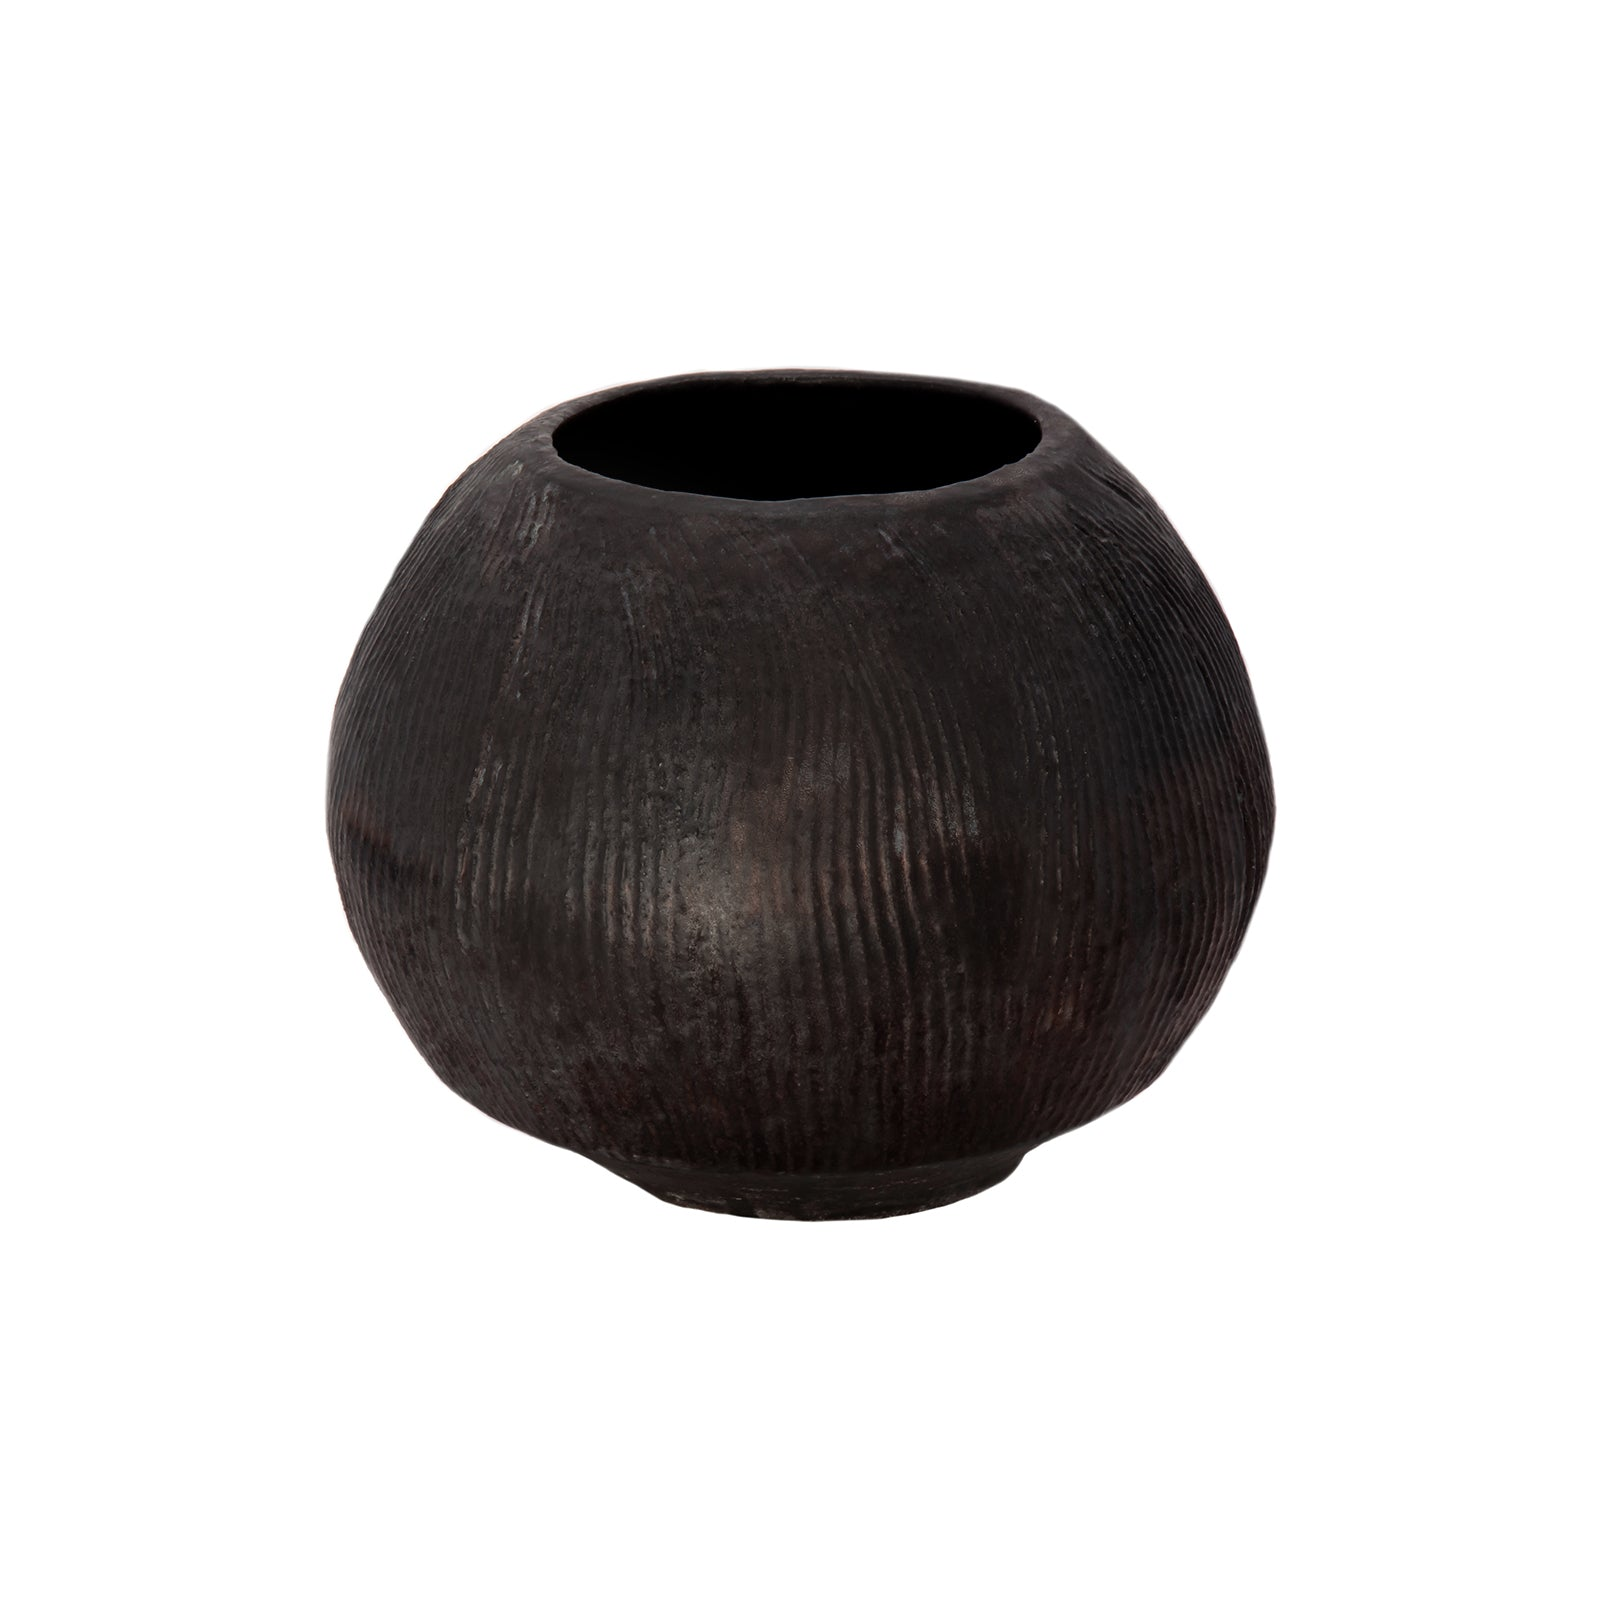 Alzamora Ceramics Black Fluted Vessel - Home & Decor - Broken English Jewelry